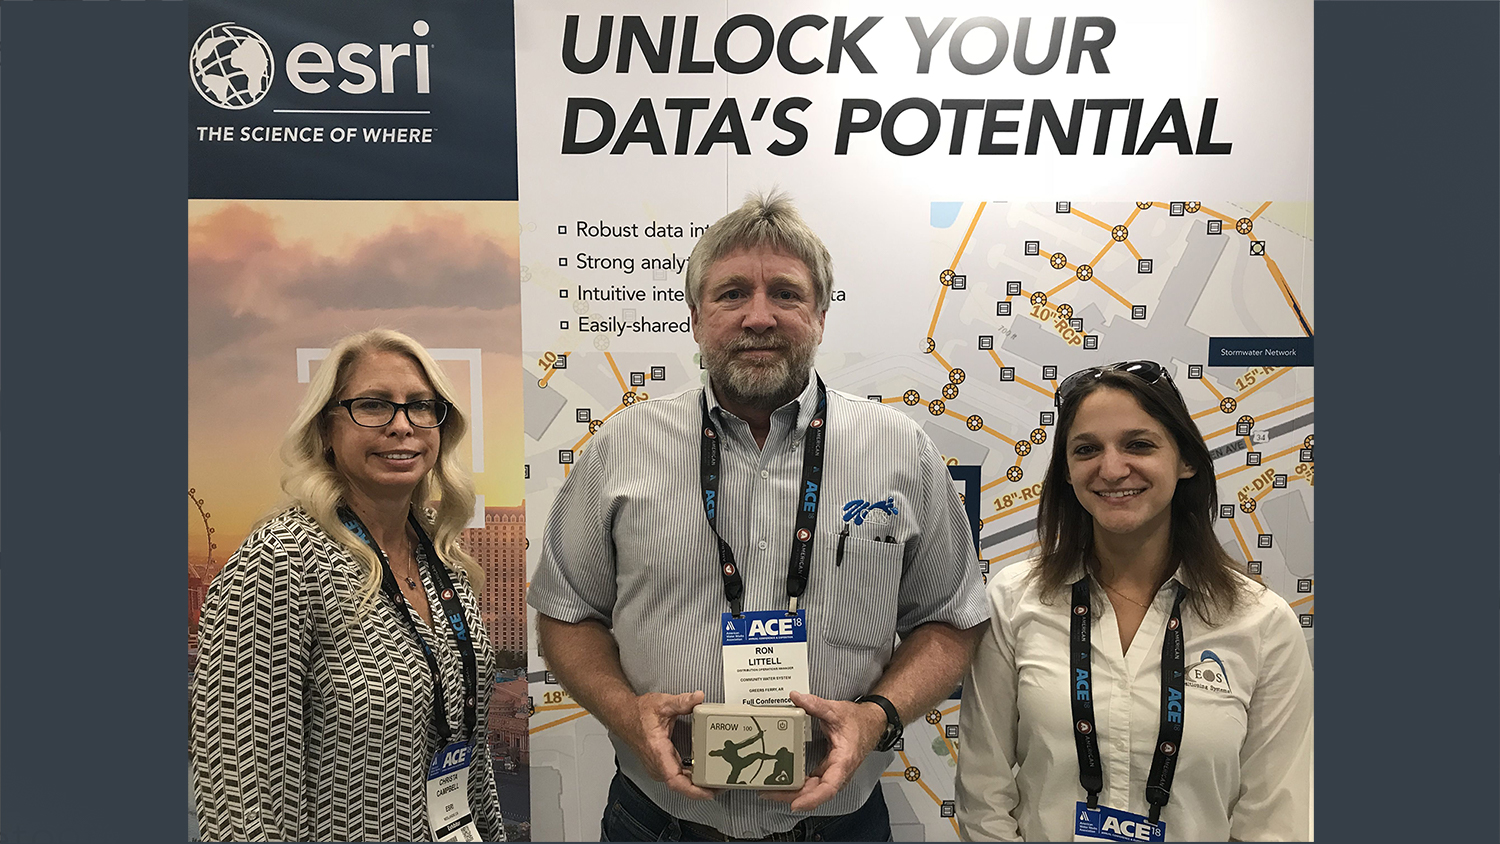 2018 AWWA ACE Giveaway Winner - Ron Littell Community Water System, Esri Eos Giveaway